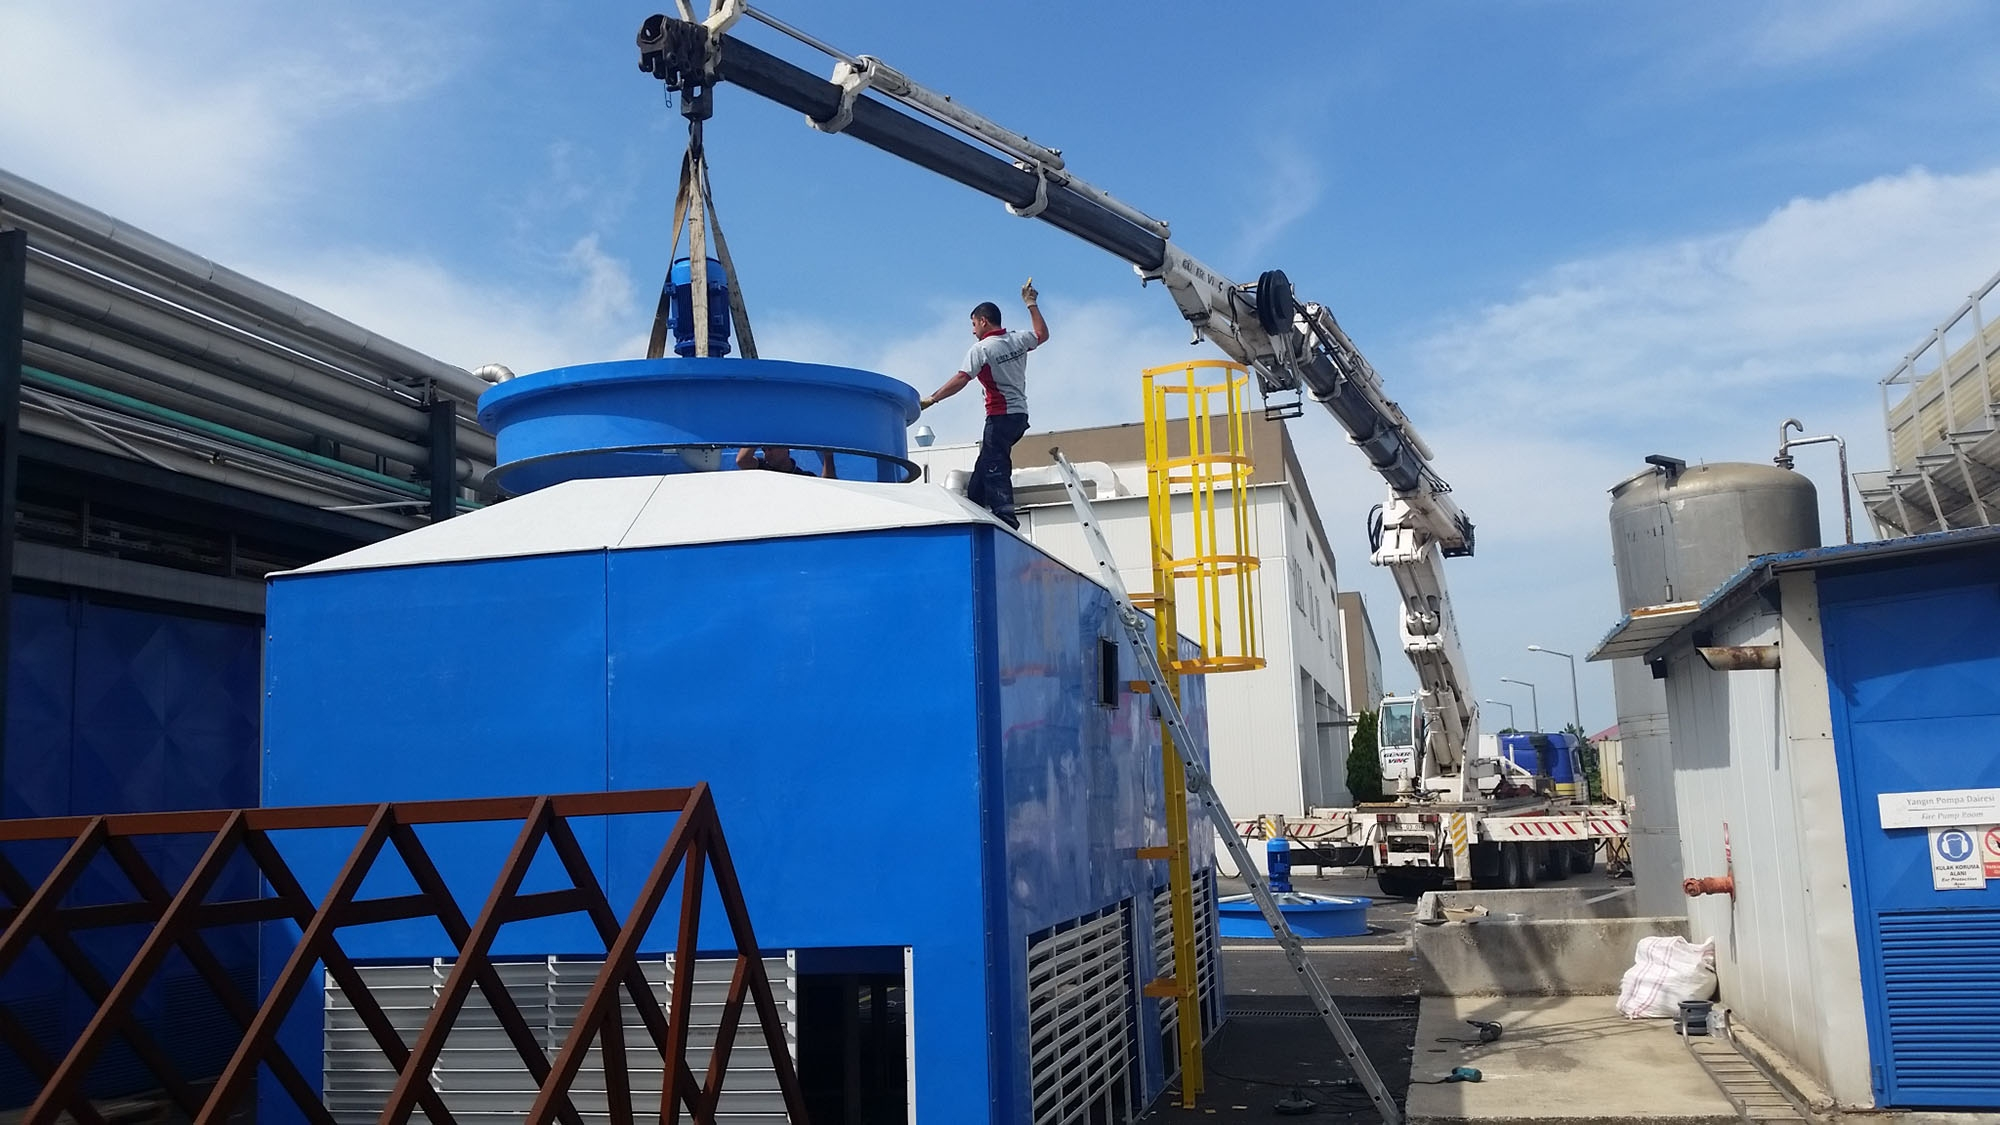 Shipping  Cooling Tower,Process  Cooling Tower,Shipping Process,Cooling Tower,